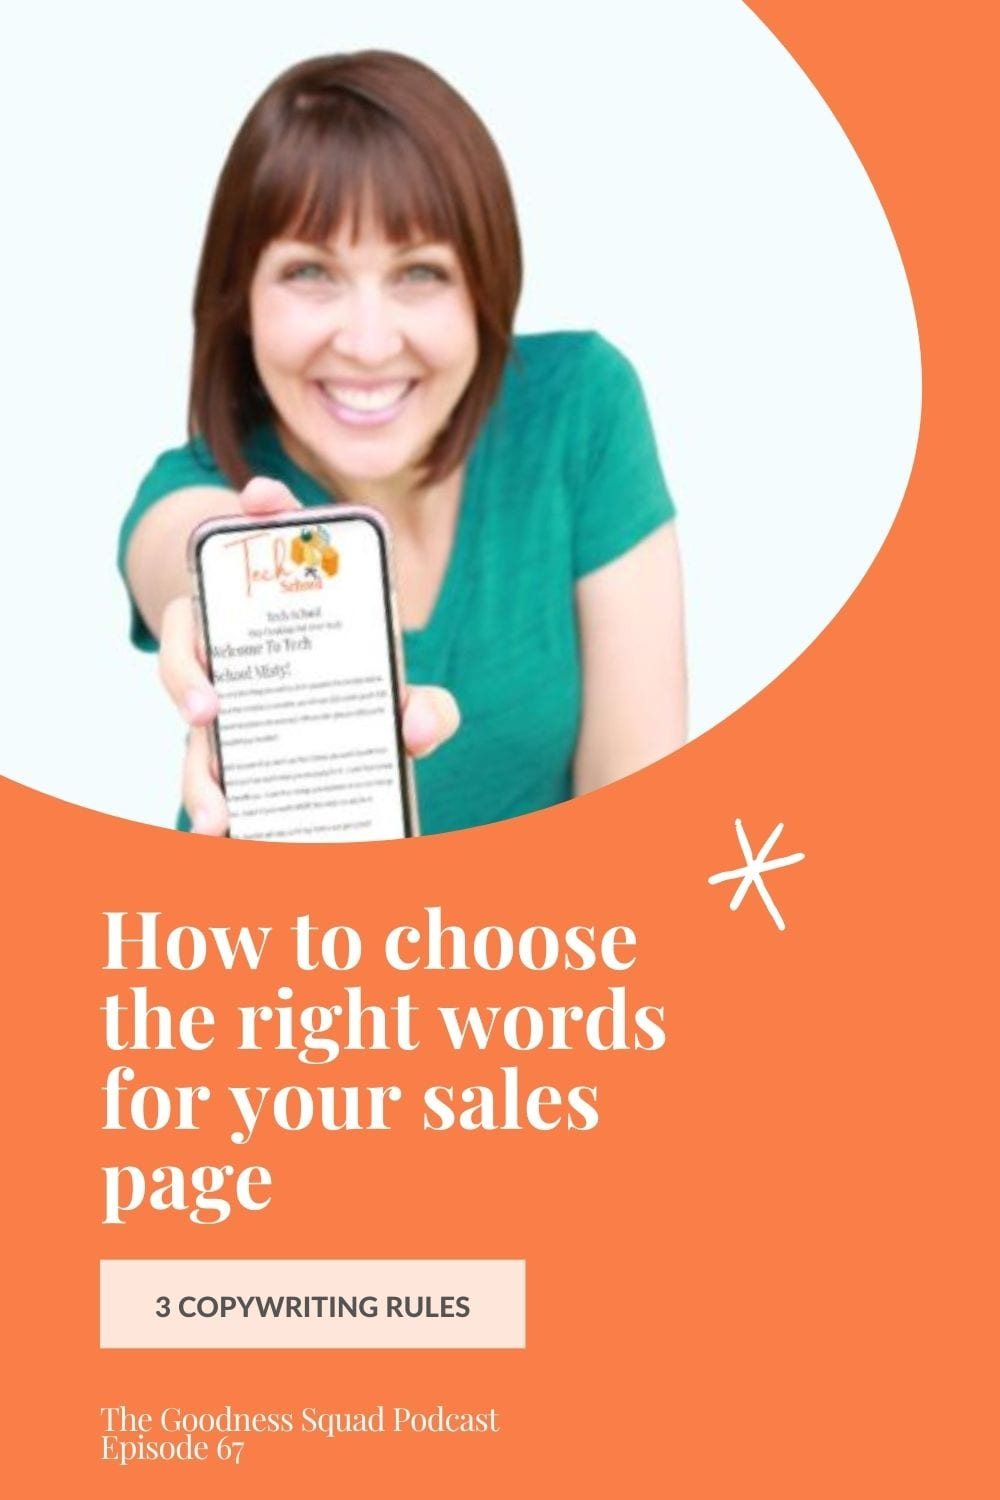 067_3 Golden rules for choosing effective words for your website copy